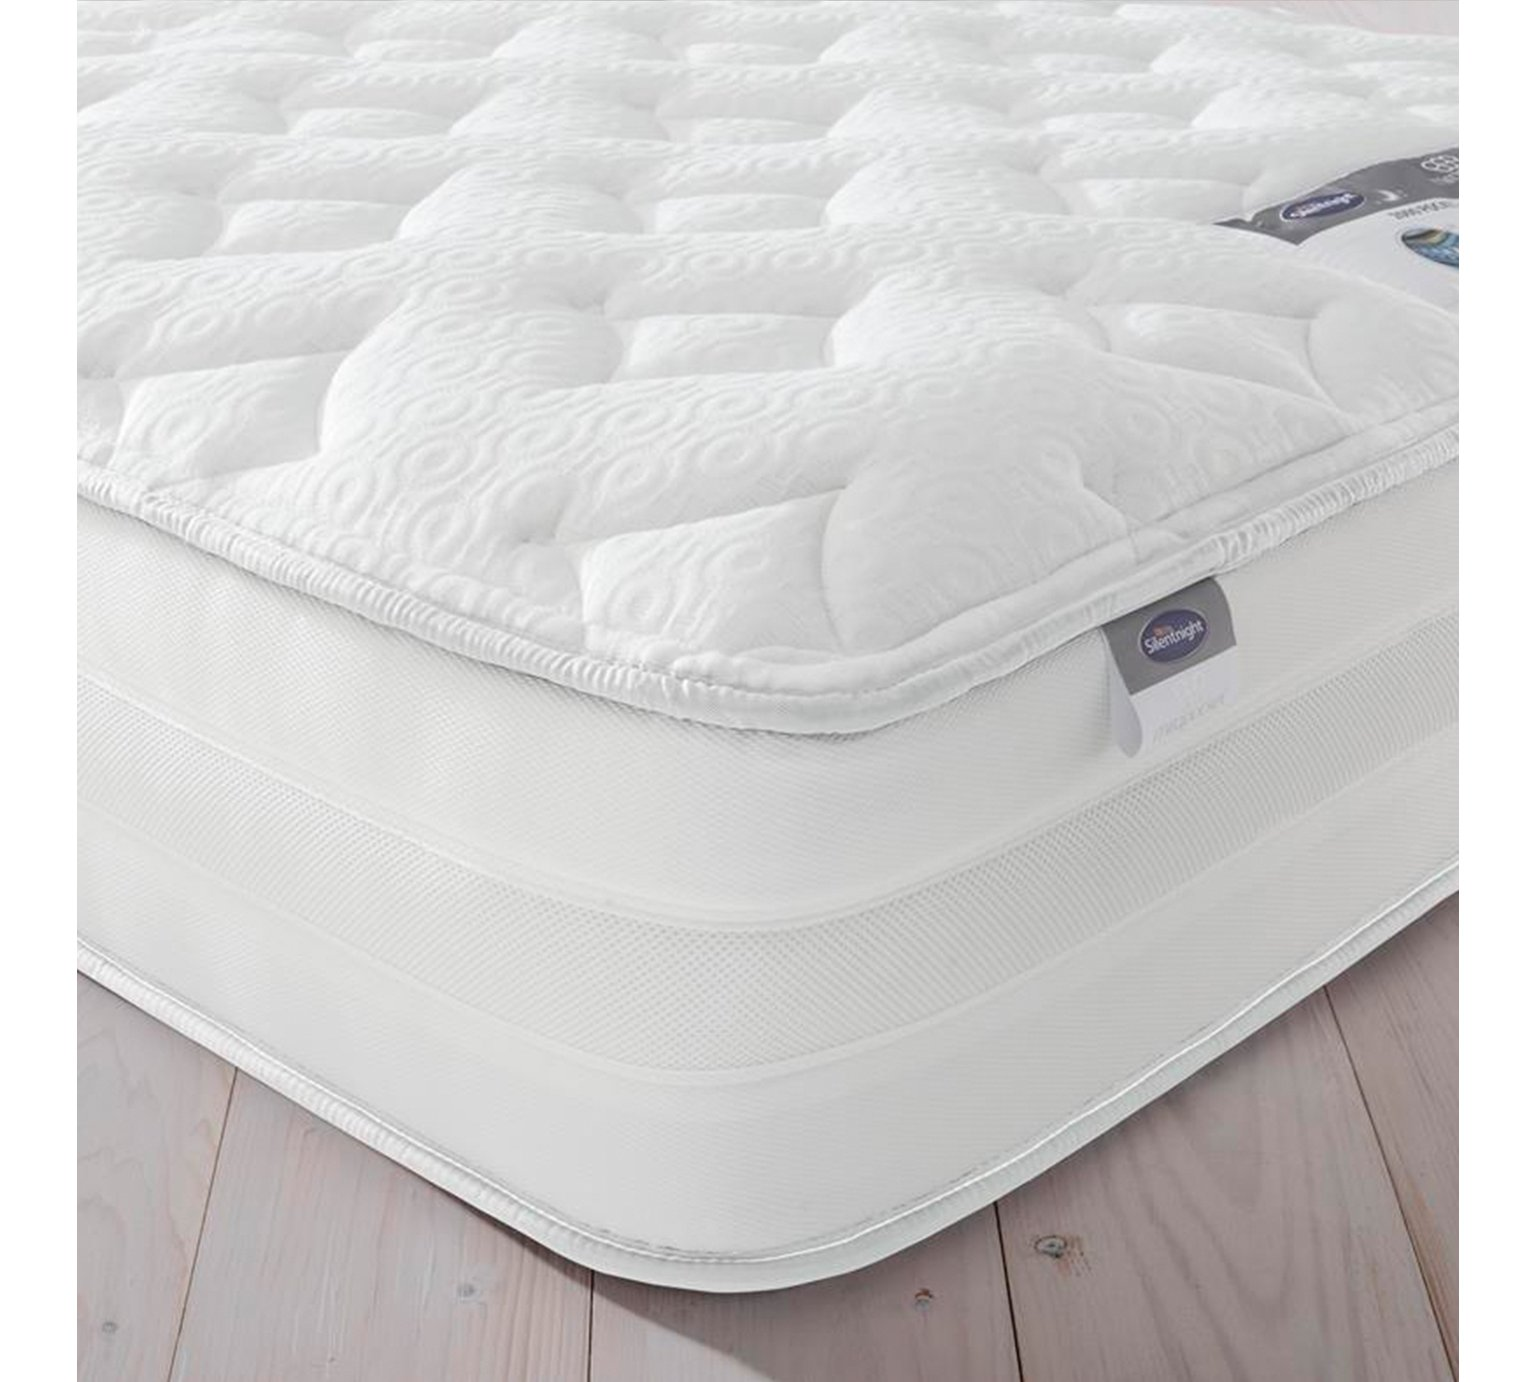 Silentnight 2000 Pocket Memory Single Mattress